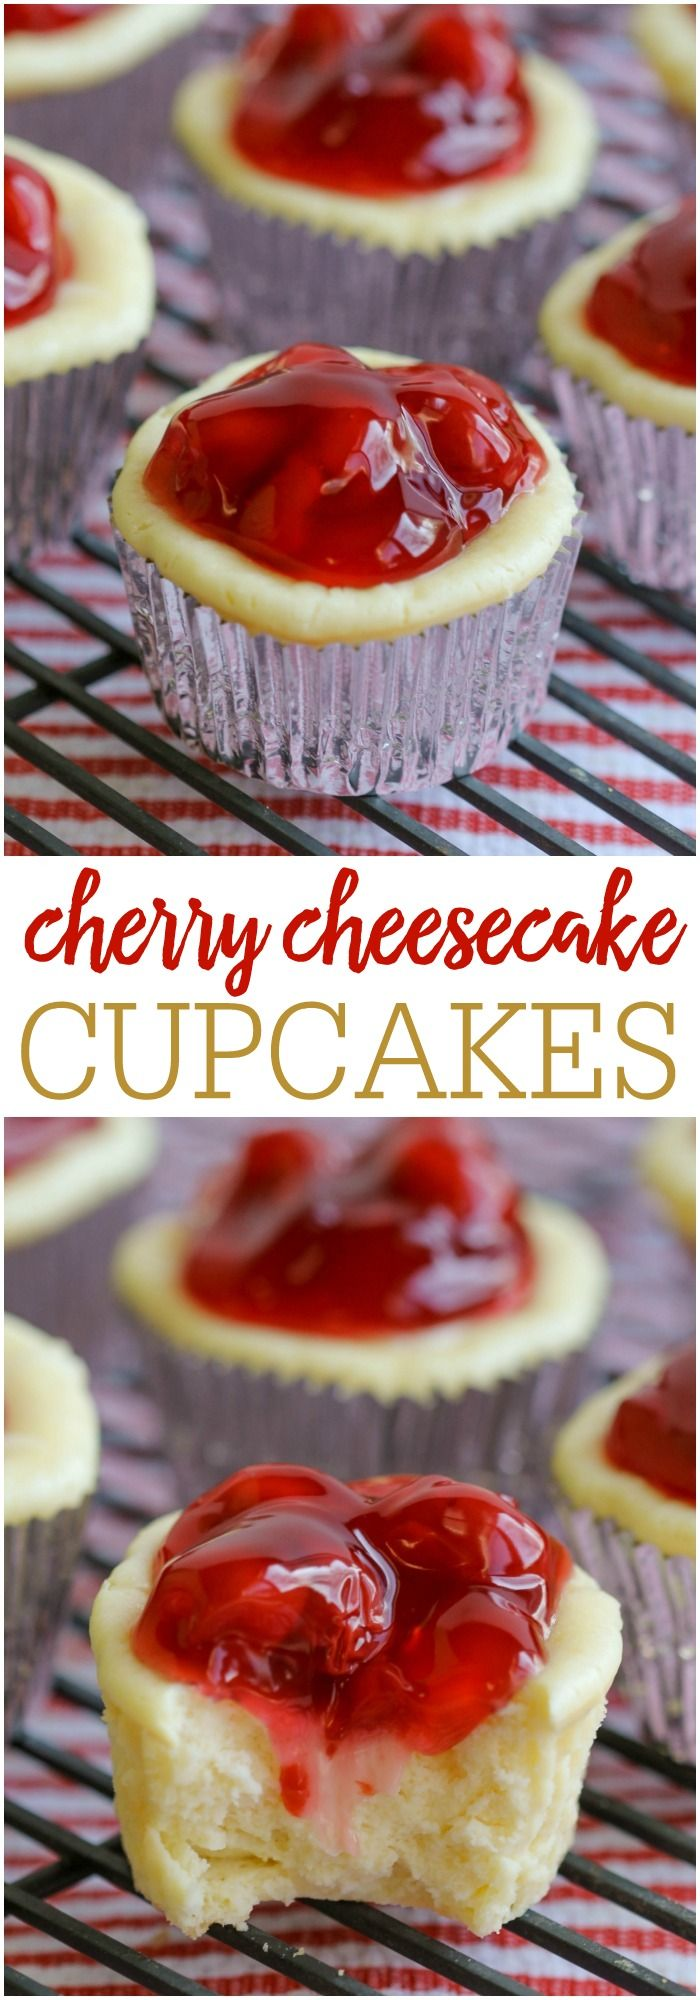 Simple and DELICIOUS Cherry Cheesecake Cupcakes - a great dessert perfect for any occasion!